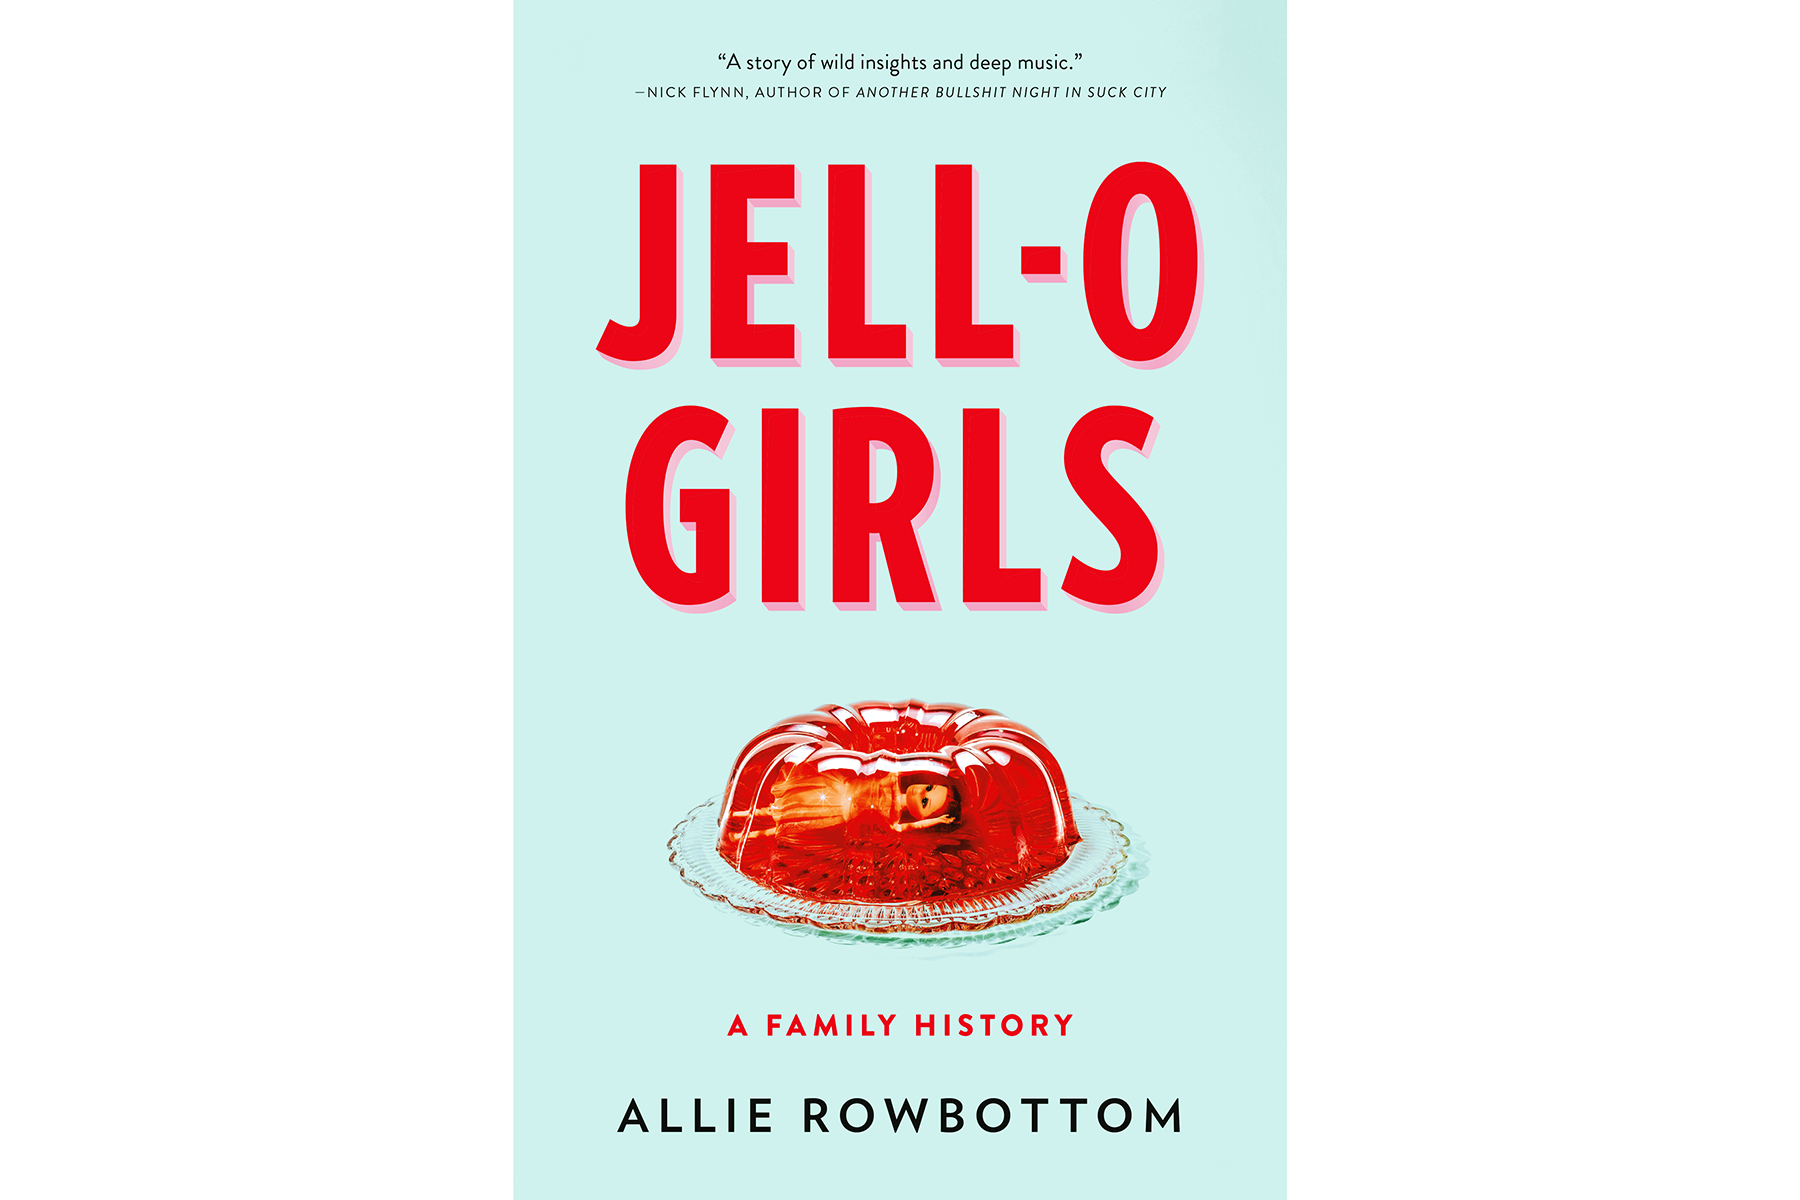 JELL-O Girls, by Allie Rowbottom